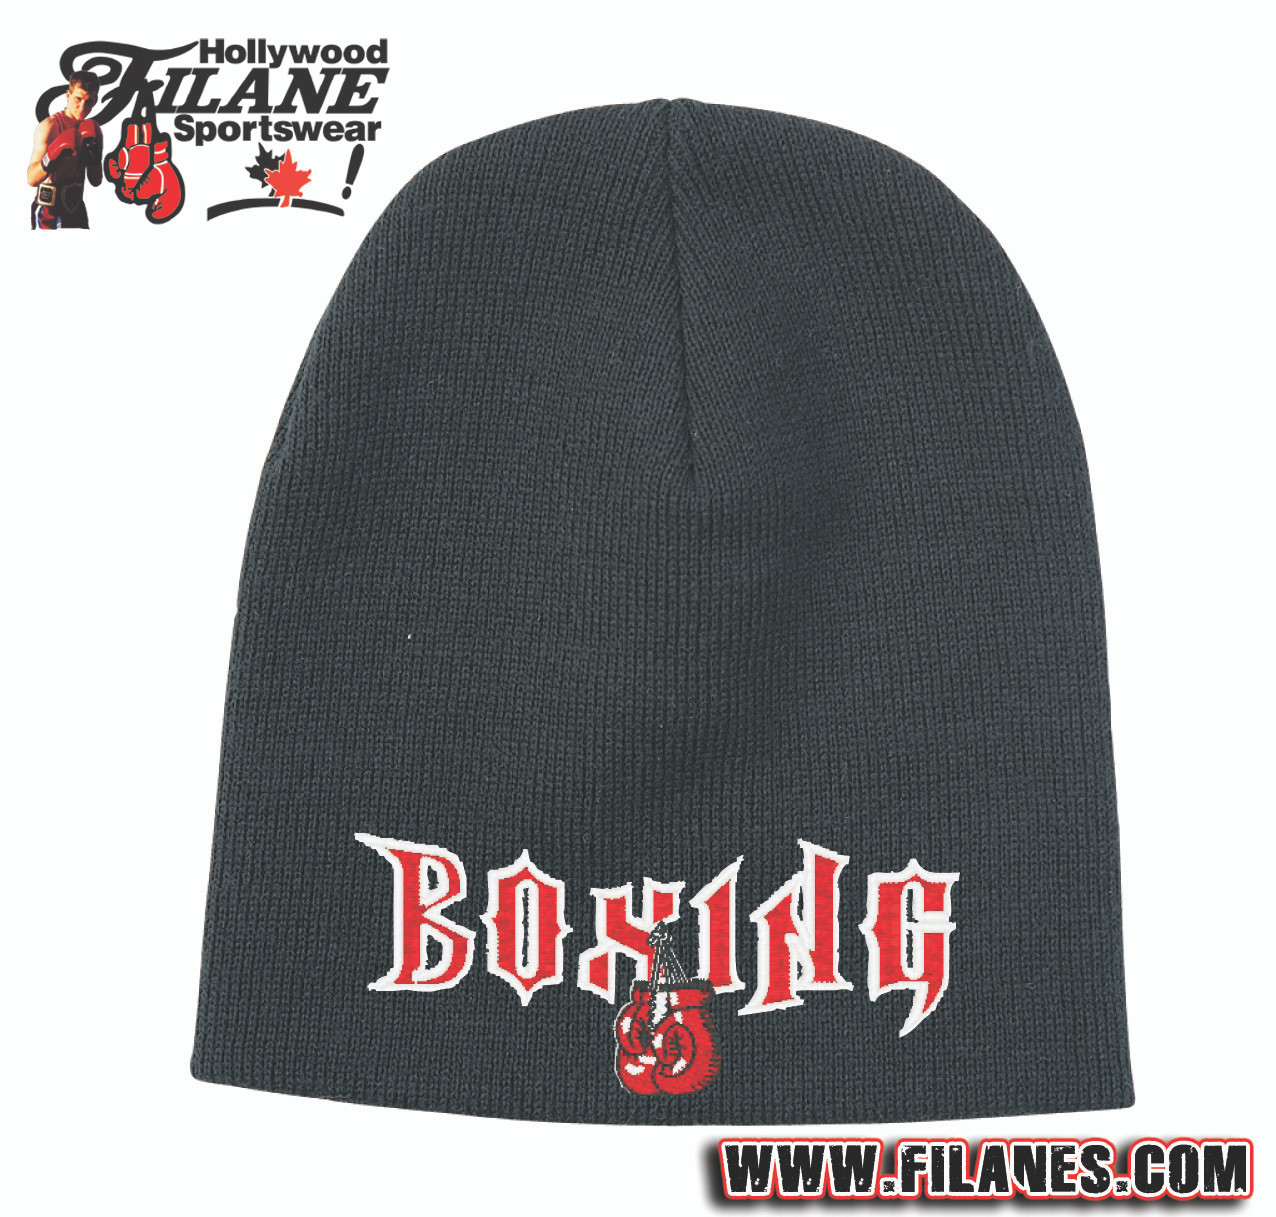 785bdce41df Customized personalized Boxing hat - Hollywood Filane